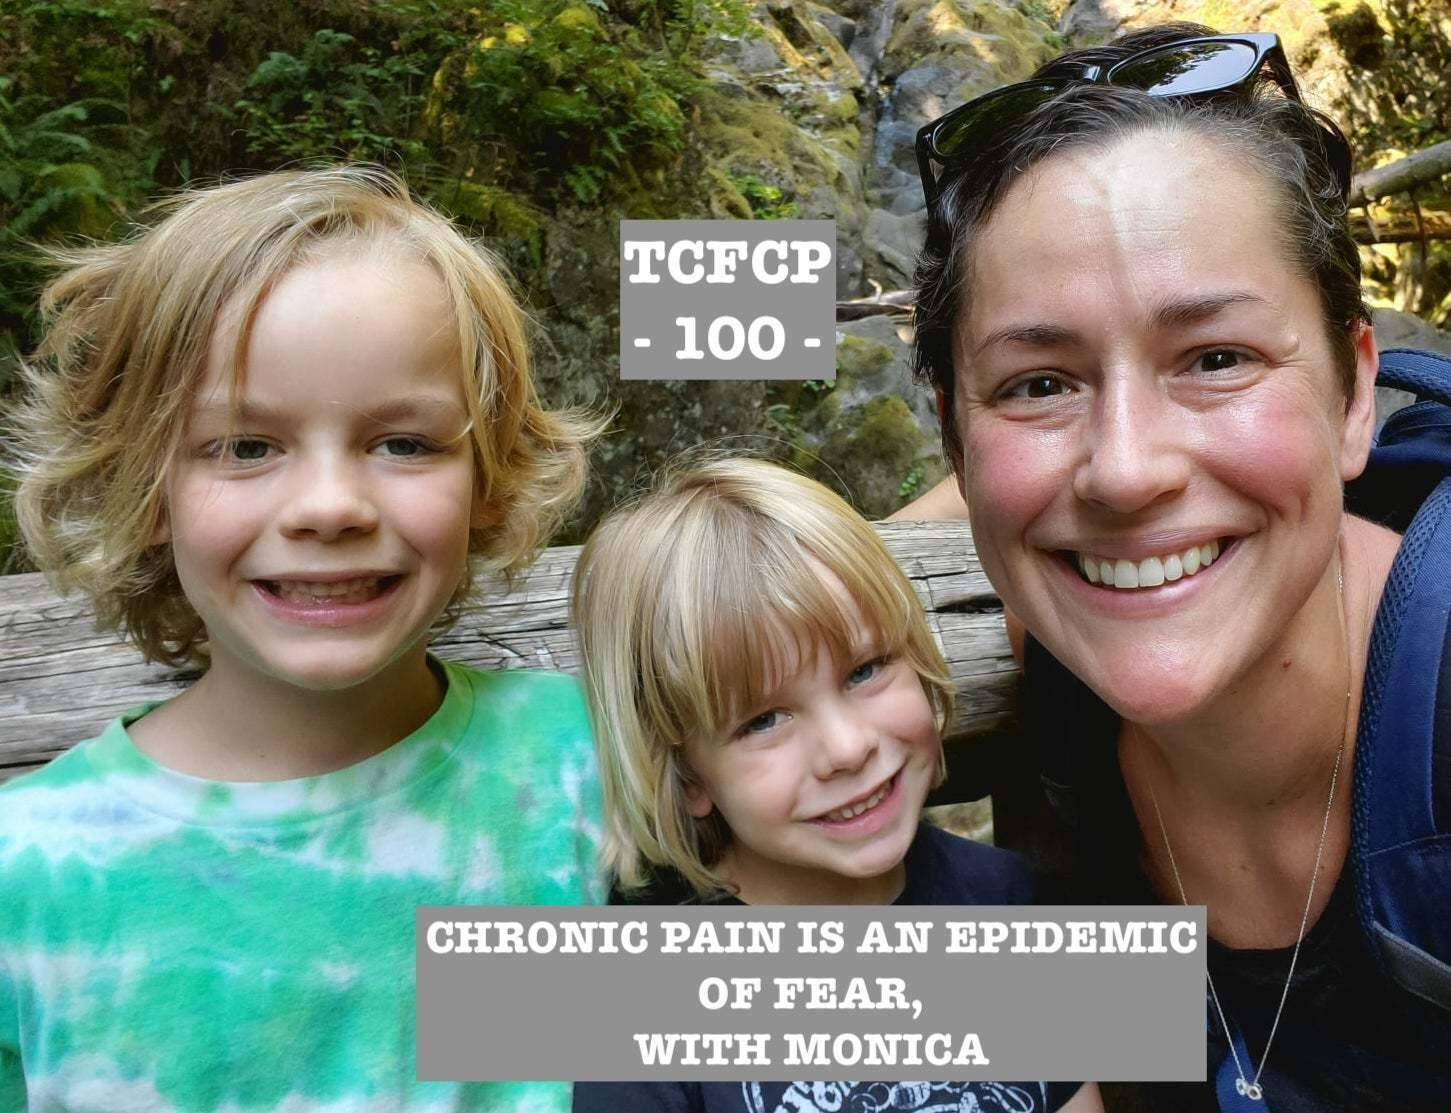 100: EPISODE 100 - CHRONIC PAIN IS AN EPIDEMIC OF FEAR WITH MONICA